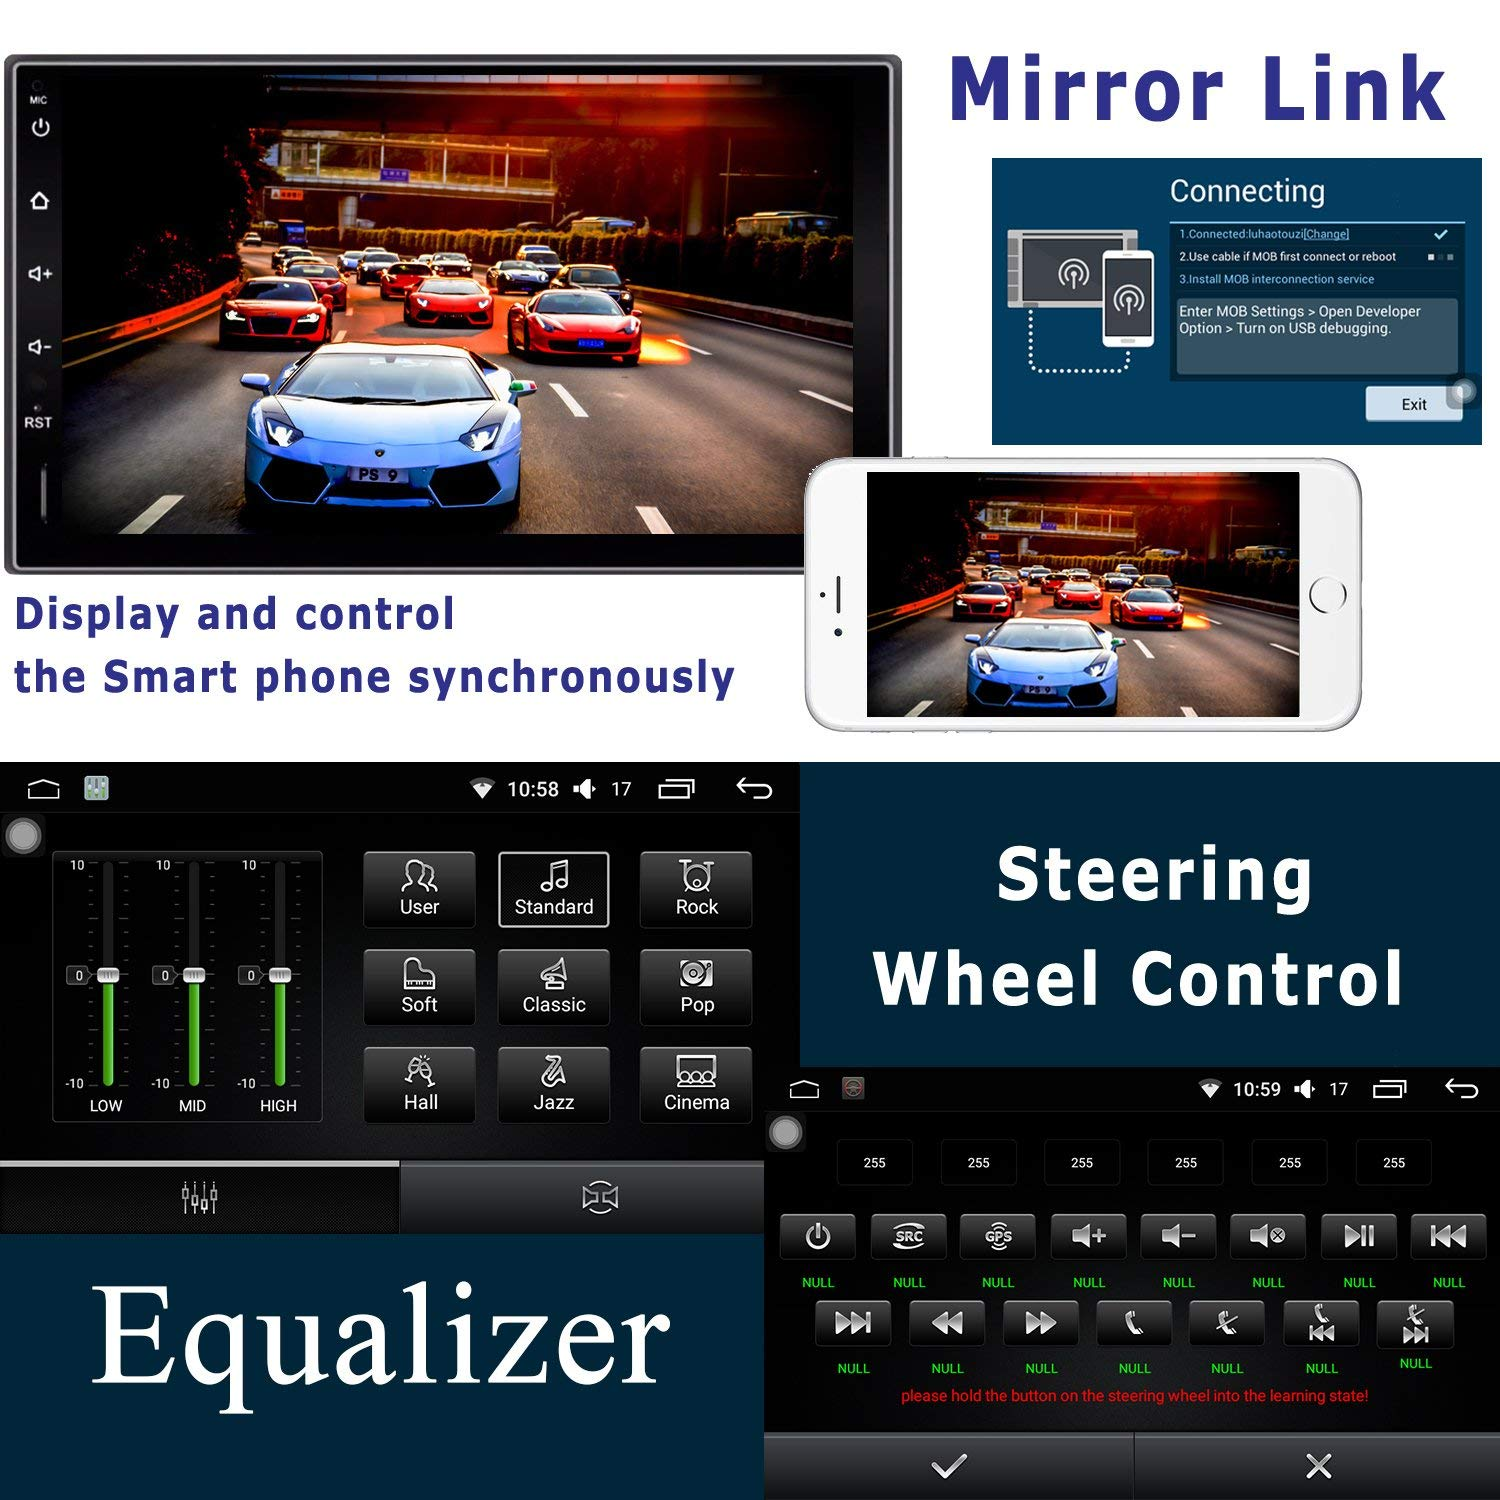 hight resolution of  wiring diagram rca video out1 aux video in sub audio out aux audio r in aux audio l in rca video out2 rca audio r out rca audio l out rear